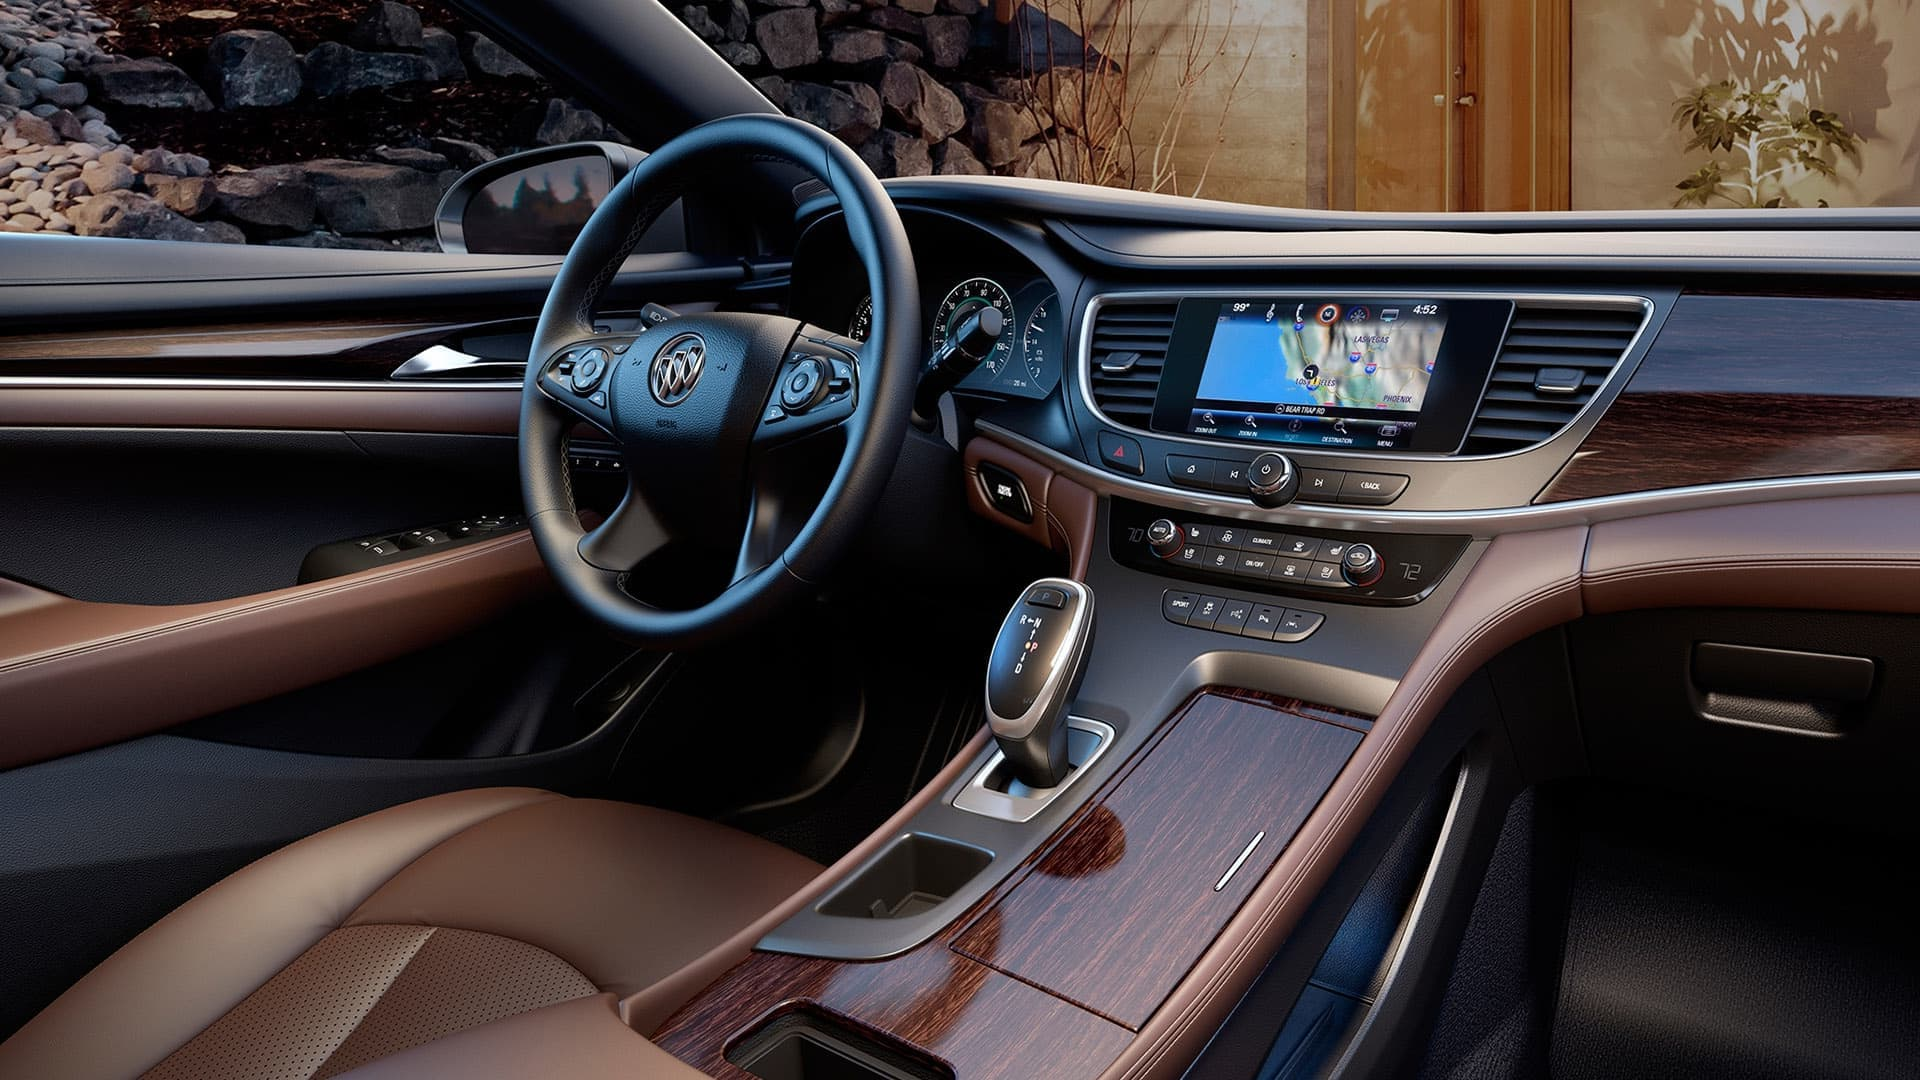 2017 Buick LaCrosse leather interior